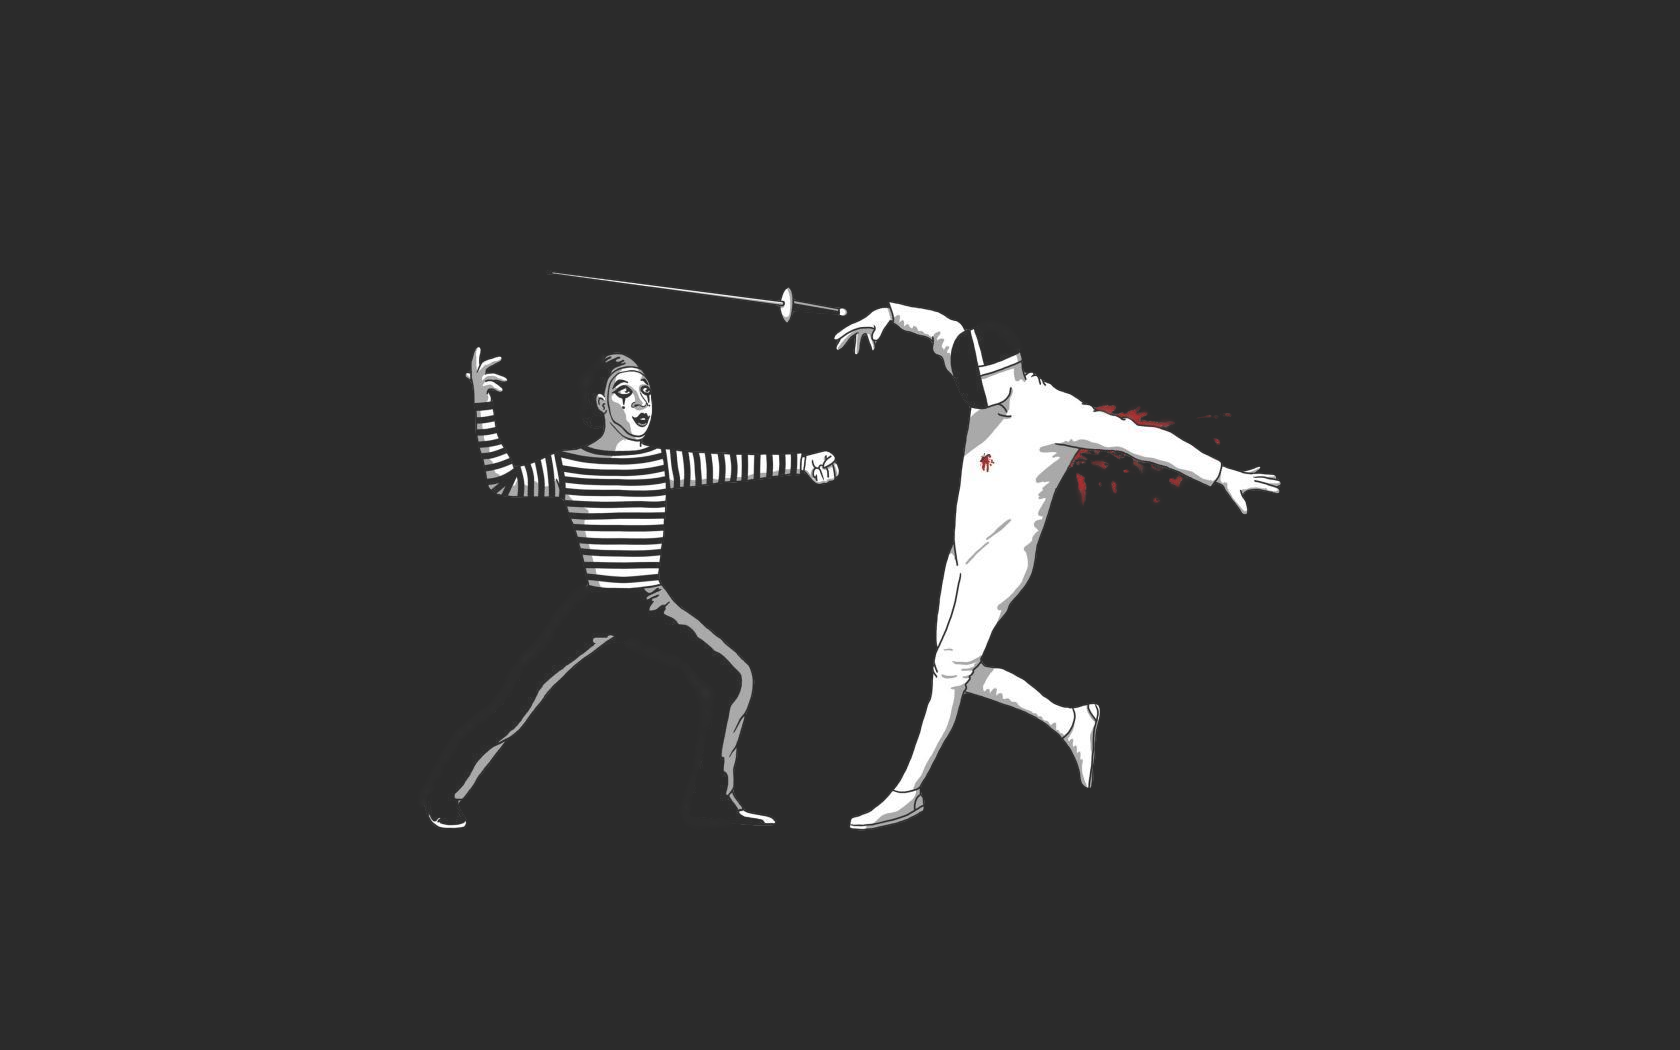 1680x1050 - Fencing Wallpapers 10